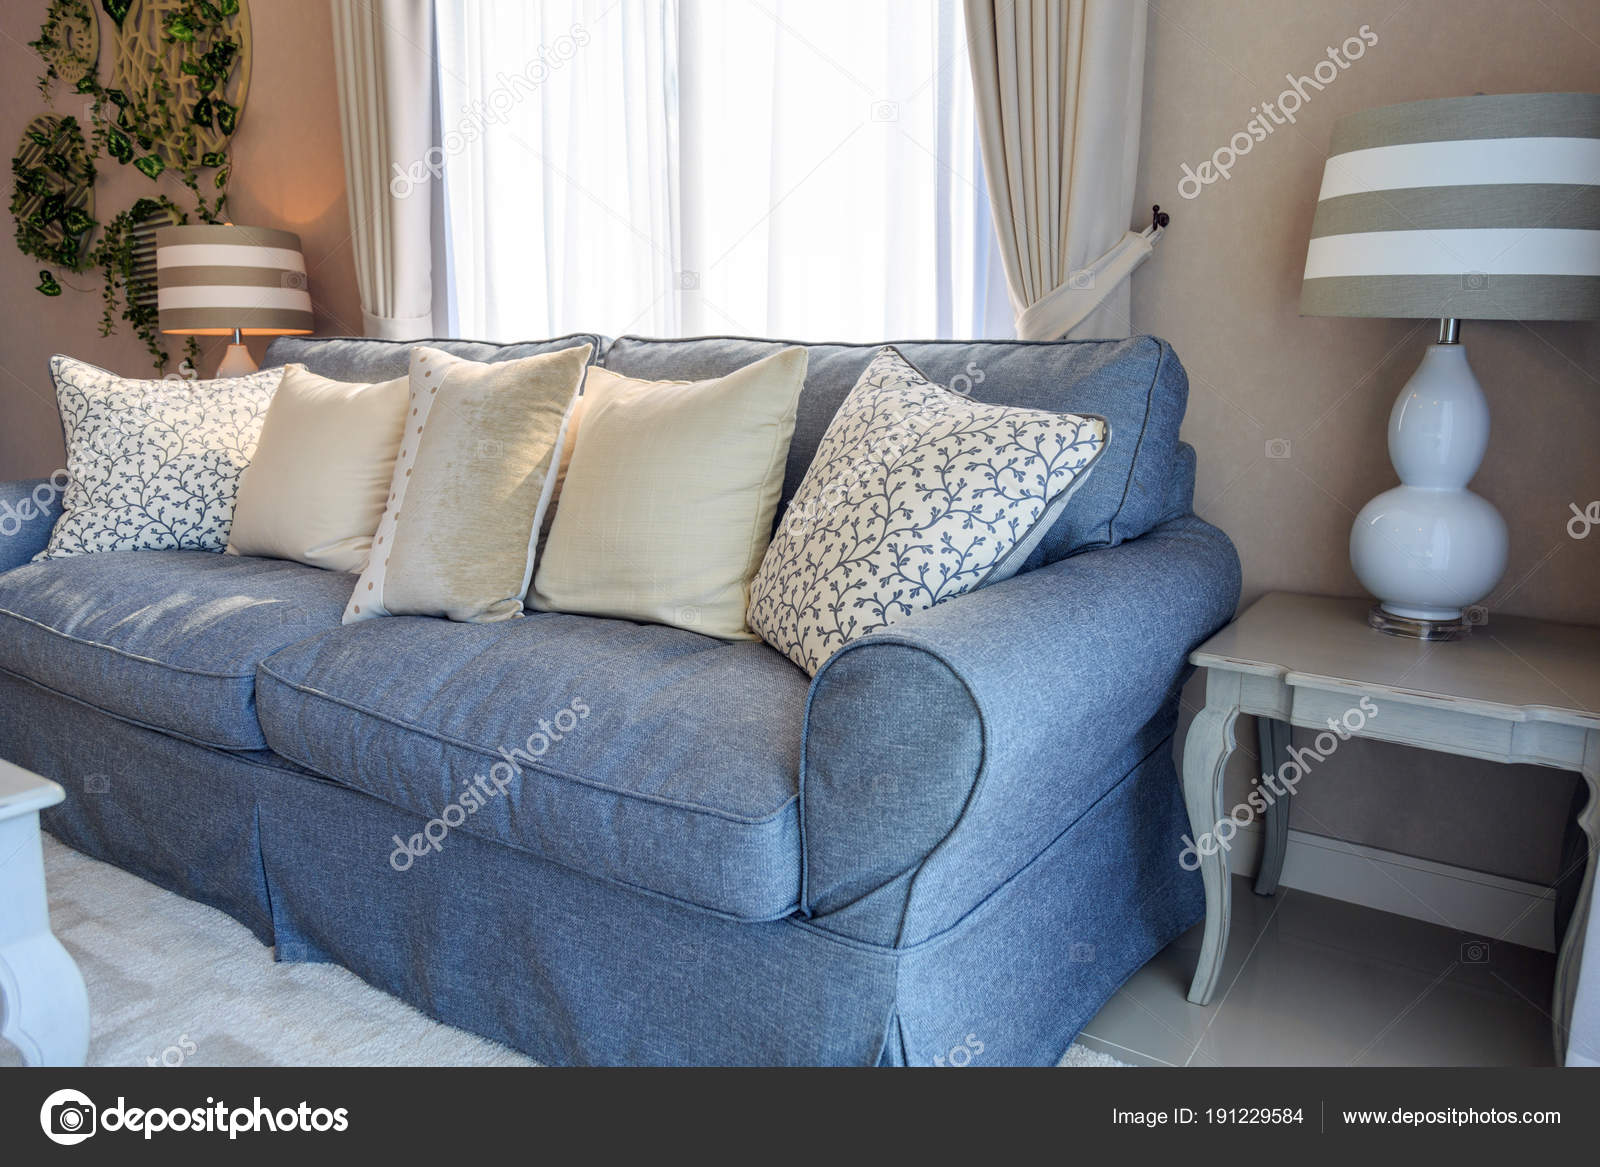 Beige Pillows On Blue Fabric Sodfa With Lamp In Living Room Stock Photo Image By Tisomboon Hotmail Com 191229584